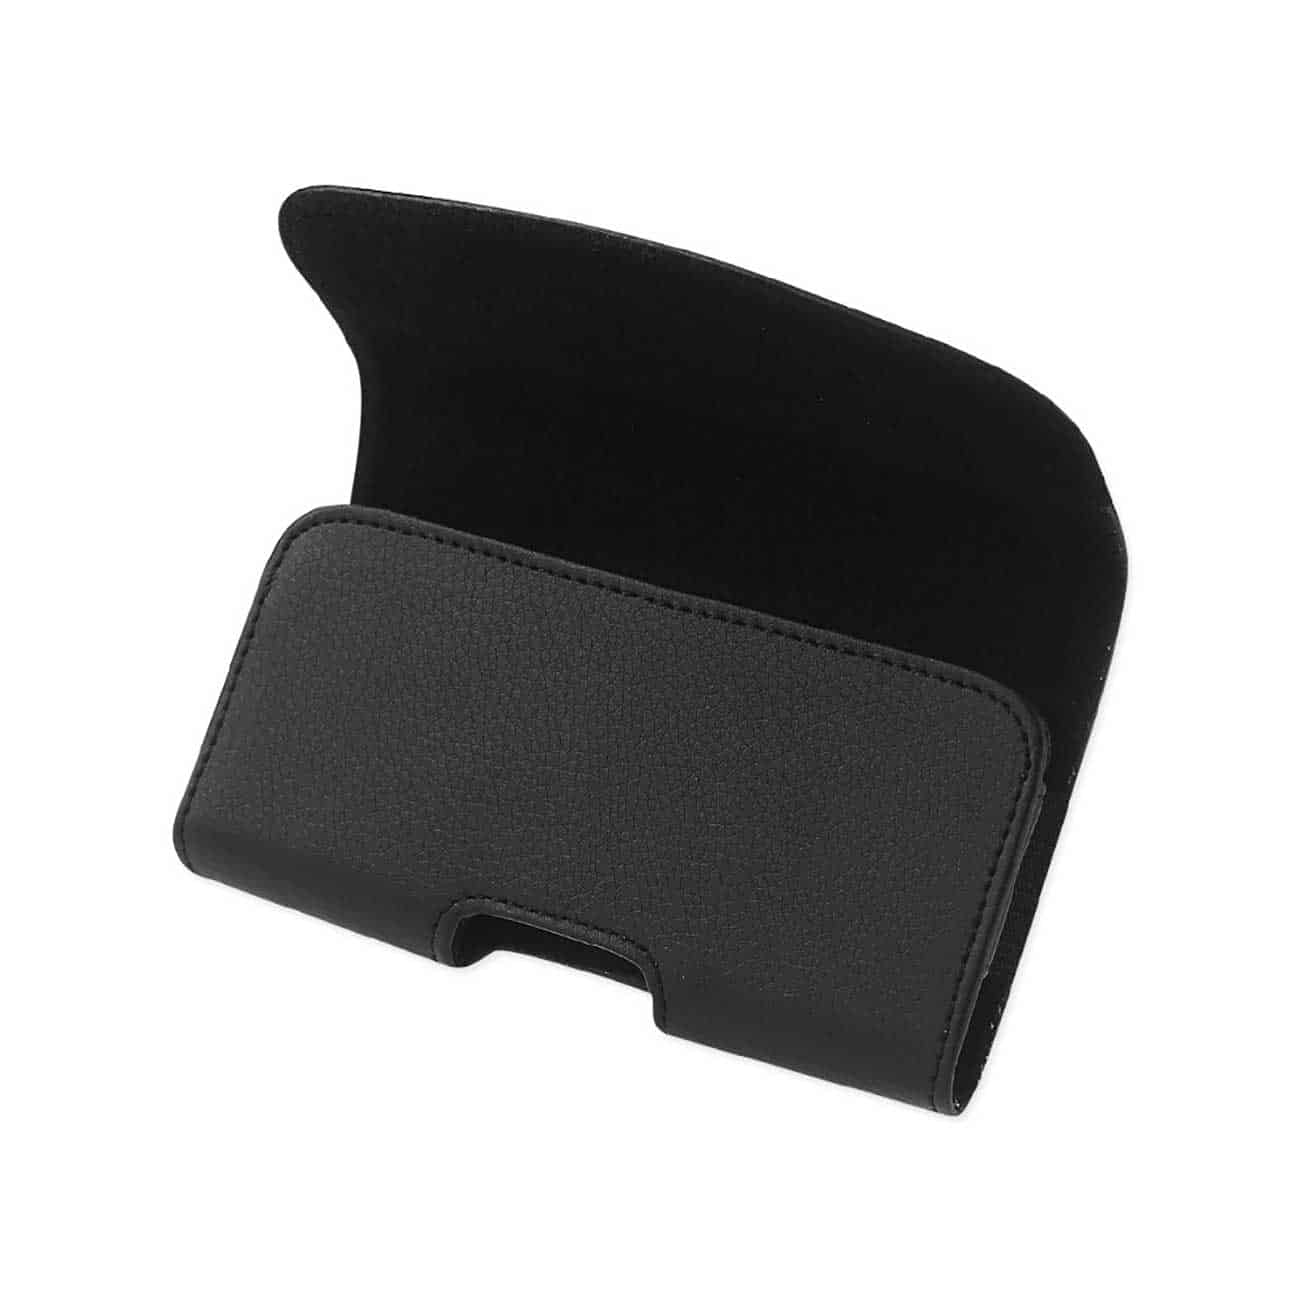 Horizontal Leather Pouch With Embossed Logo In Black (6.4X3.5X0.7 Inches)